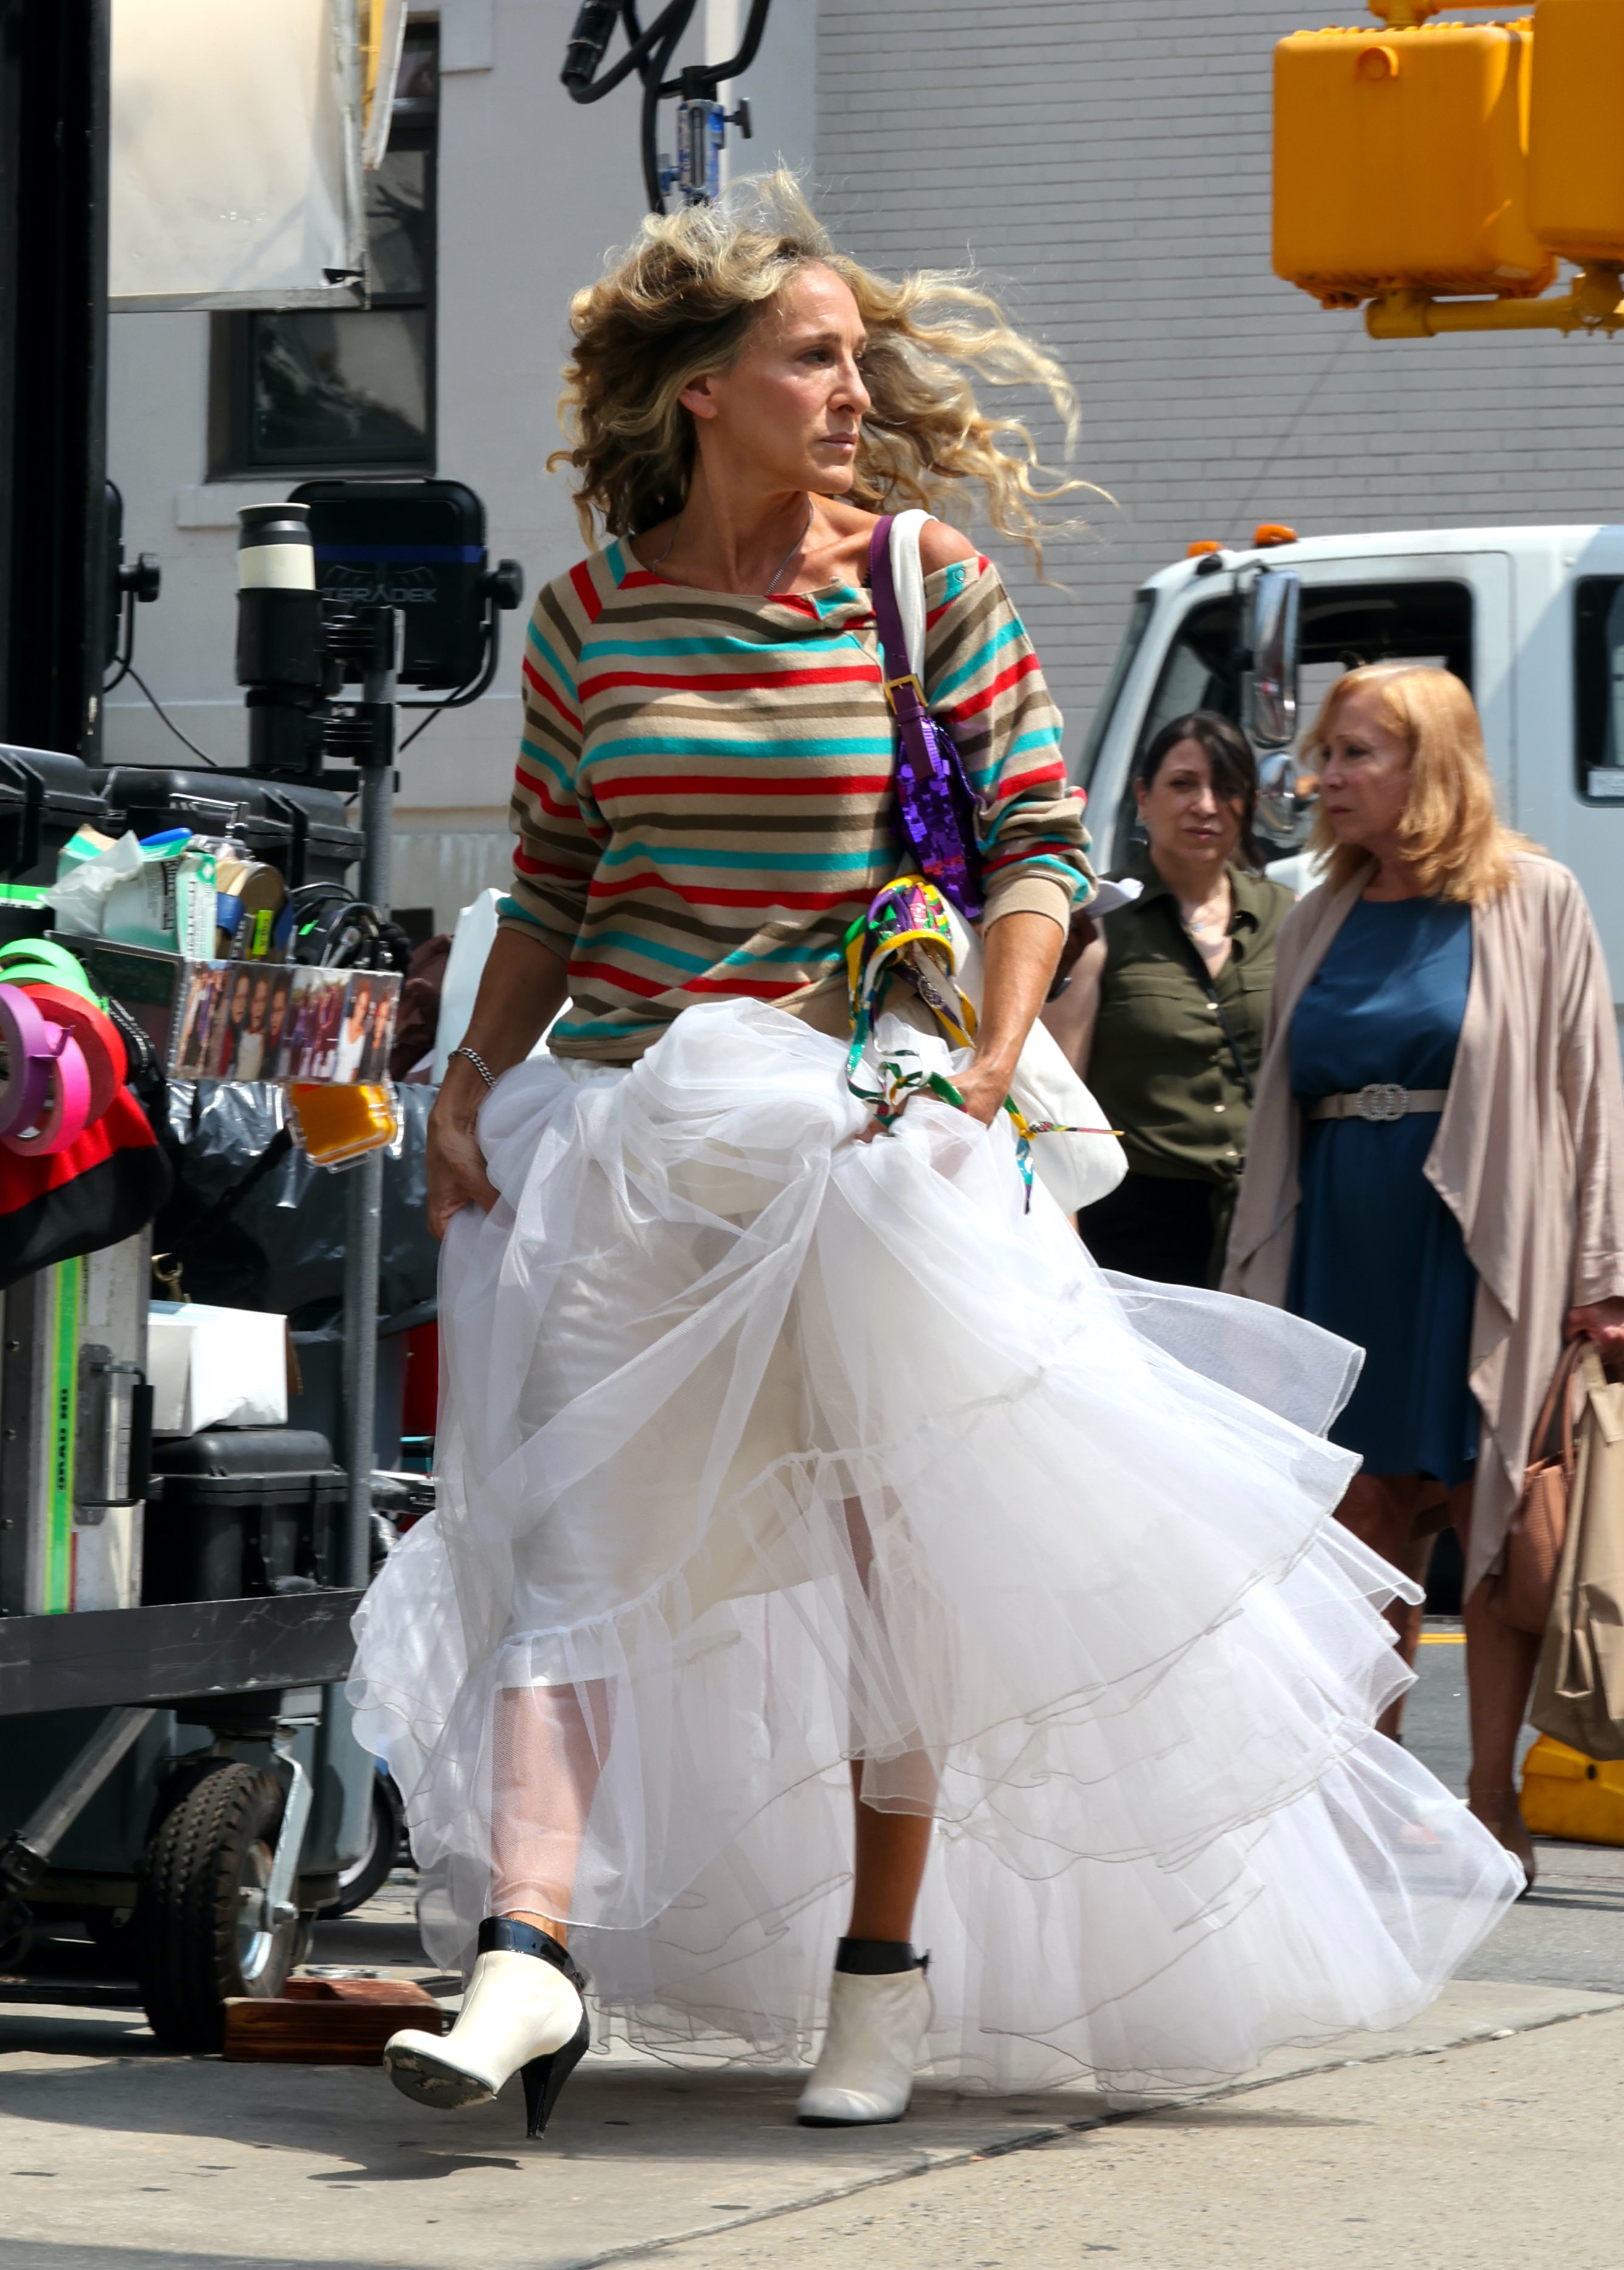 """Sarah Jessica Parker are seen filming """"And Just Like That..."""" the follow up series to """"Sex and the City"""" in New York City. 27 Aug 2021 Pictured: Sarah Jessica Parker. Photo credit: Jose Perez/Bauergriffin.com / MEGA TheMegaAgency.com +1 888 505 6342 (Mega Agency TagID: MEGA781825_004.jpg) [Photo via Mega Agency]"""